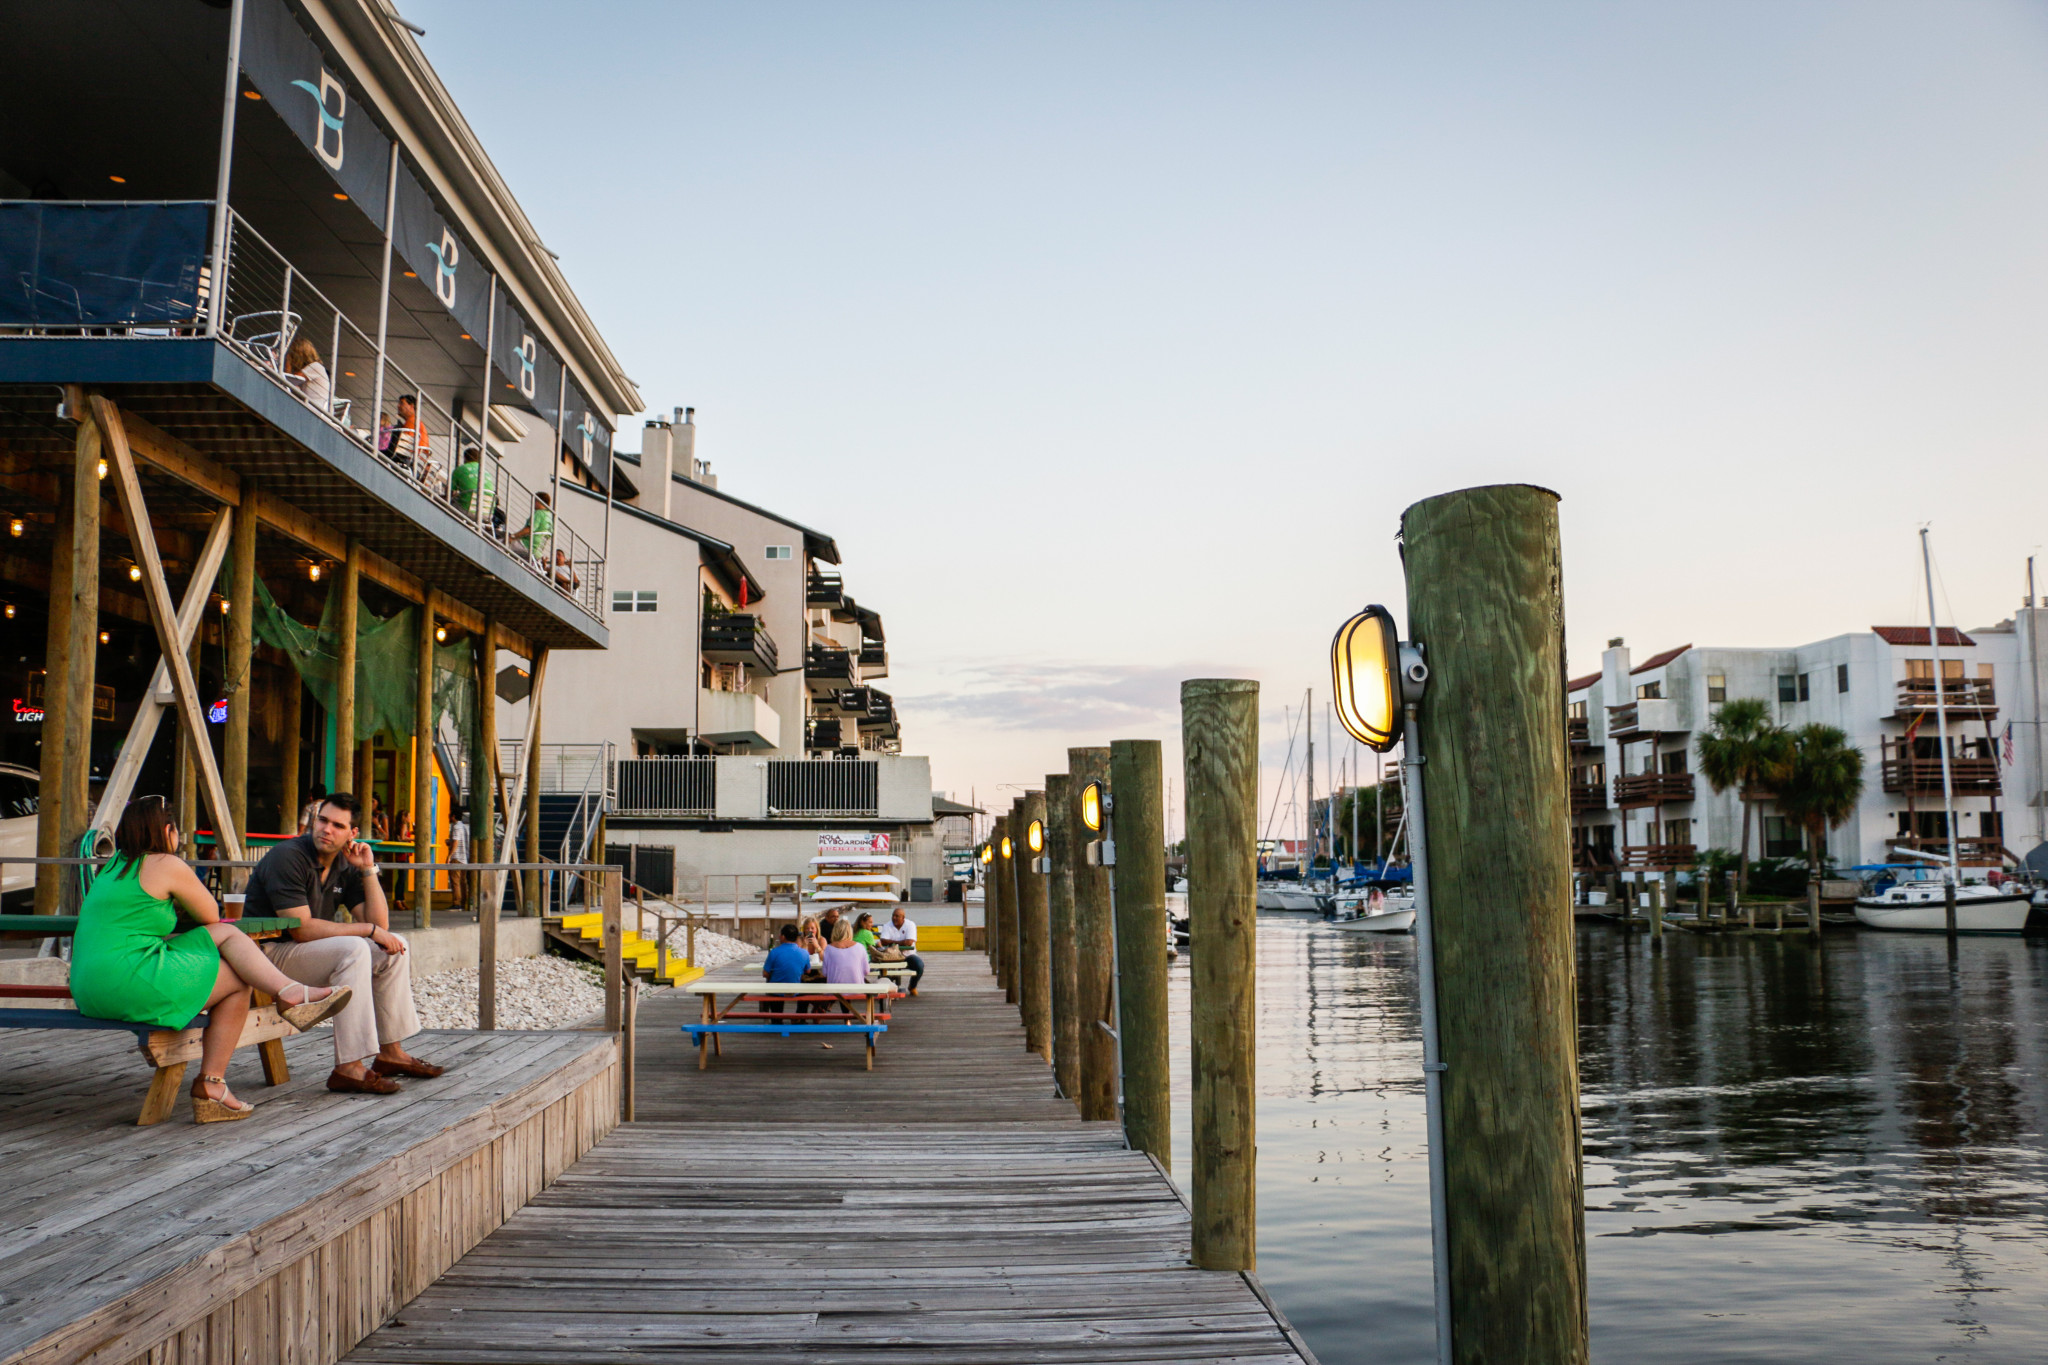 Brisbi's Seafood sits right on the water. (Photo: Rebecca Ratliff)